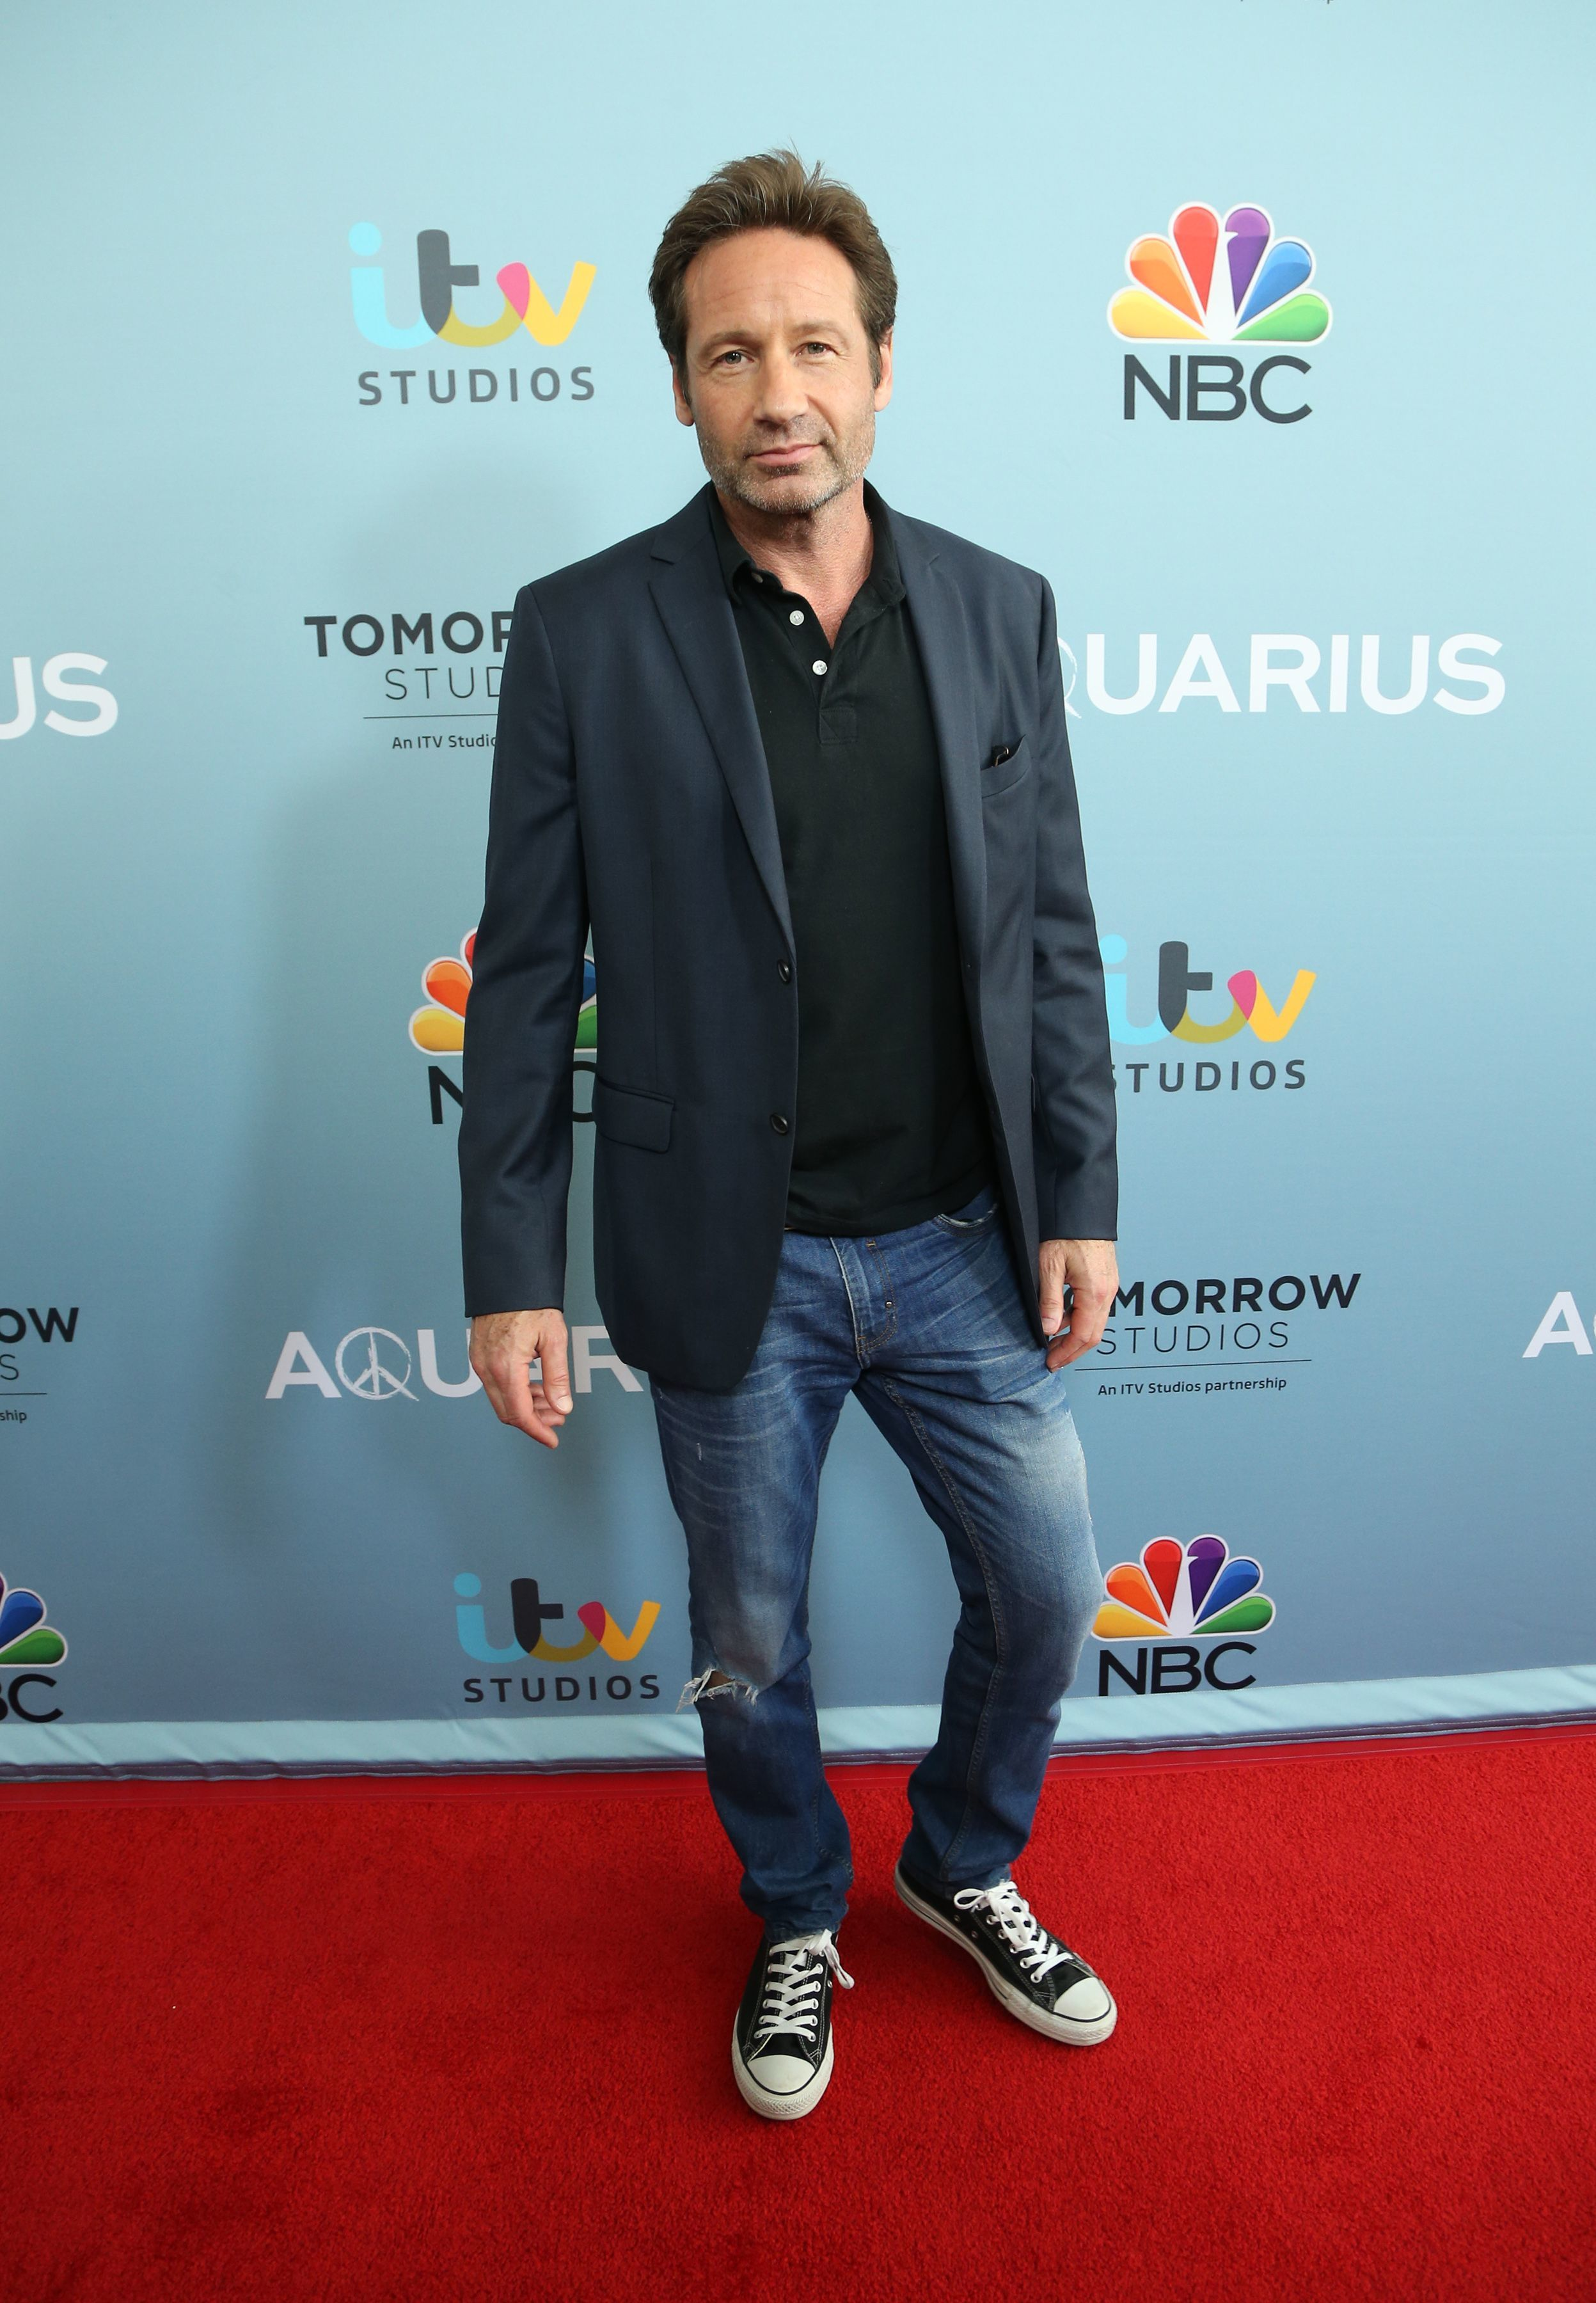 David Duchovny steps out with much younger gal pal